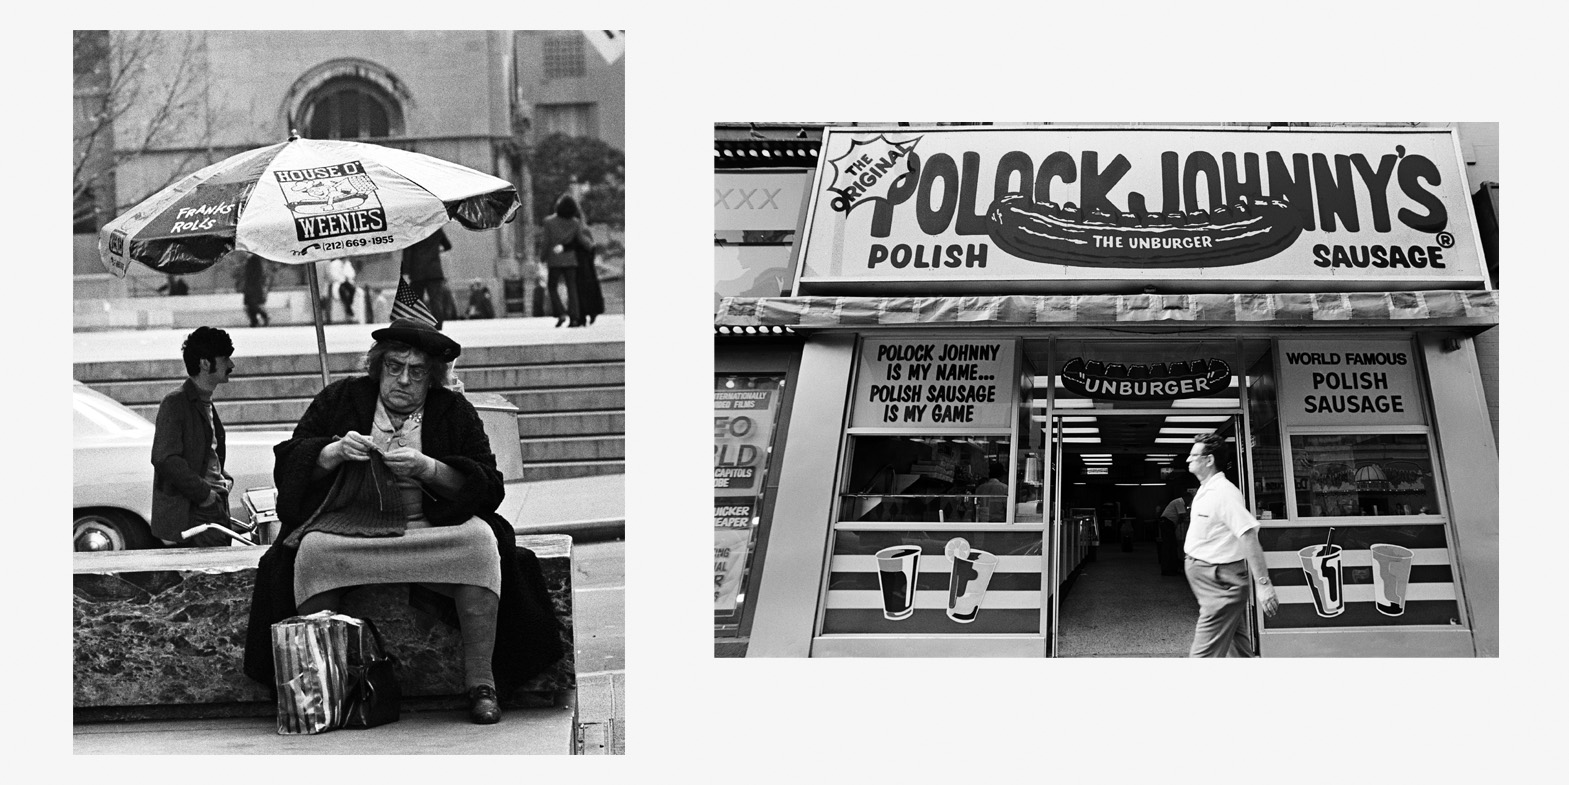 House of Weenies New York 1980 | Polock Johnny's Maryland 1981 Copyright © Mark Chester from the book  Twosomes  (Un-Gyve Press, Boston). ( PRNewsFoto/Un-Gyve Press )